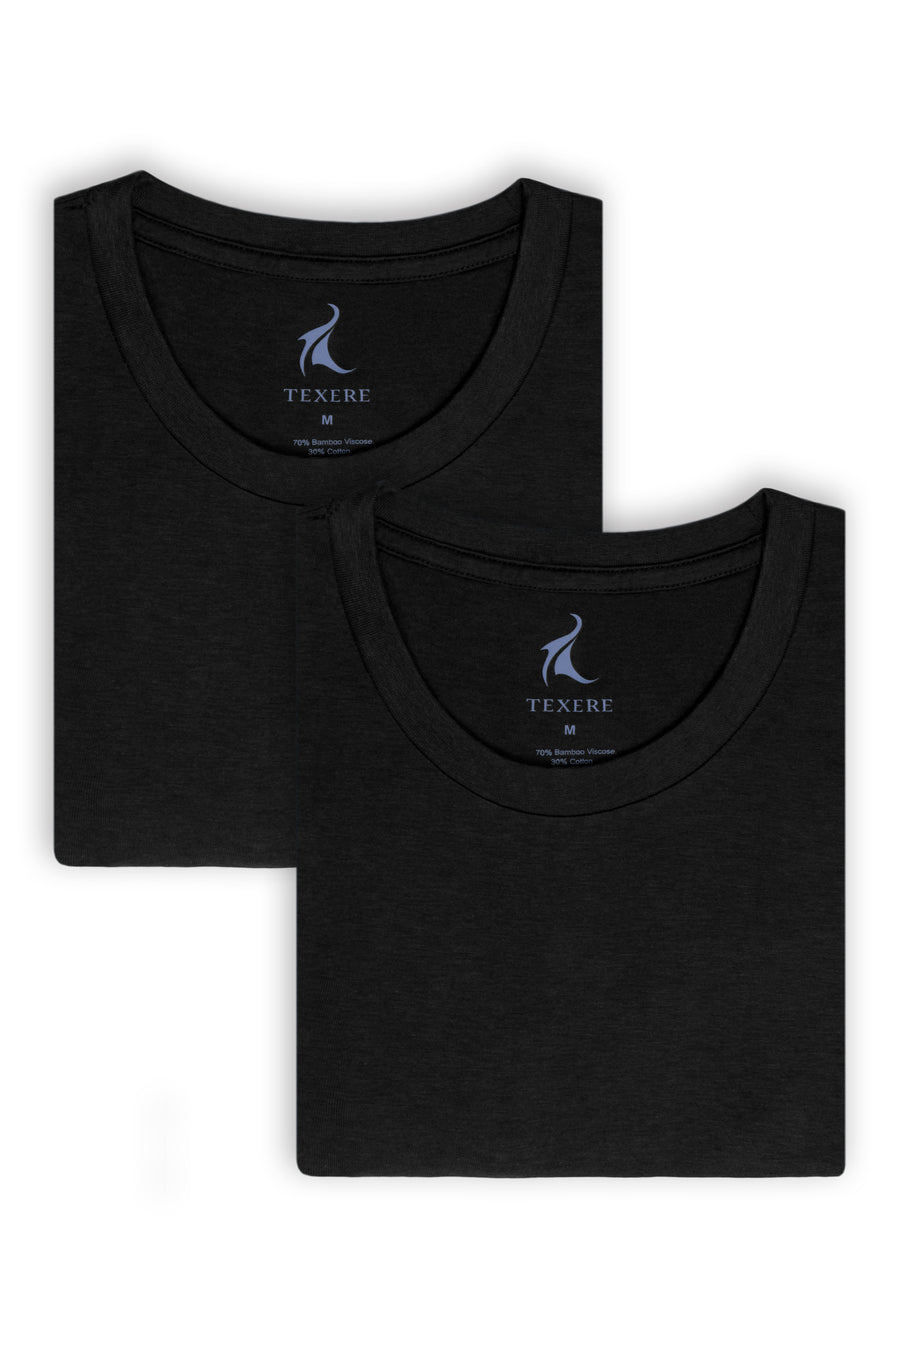 Dexx - Men's Bamboo Viscose Crew Neck Undershirt - 2 Pack - testing23451234 - Underwear